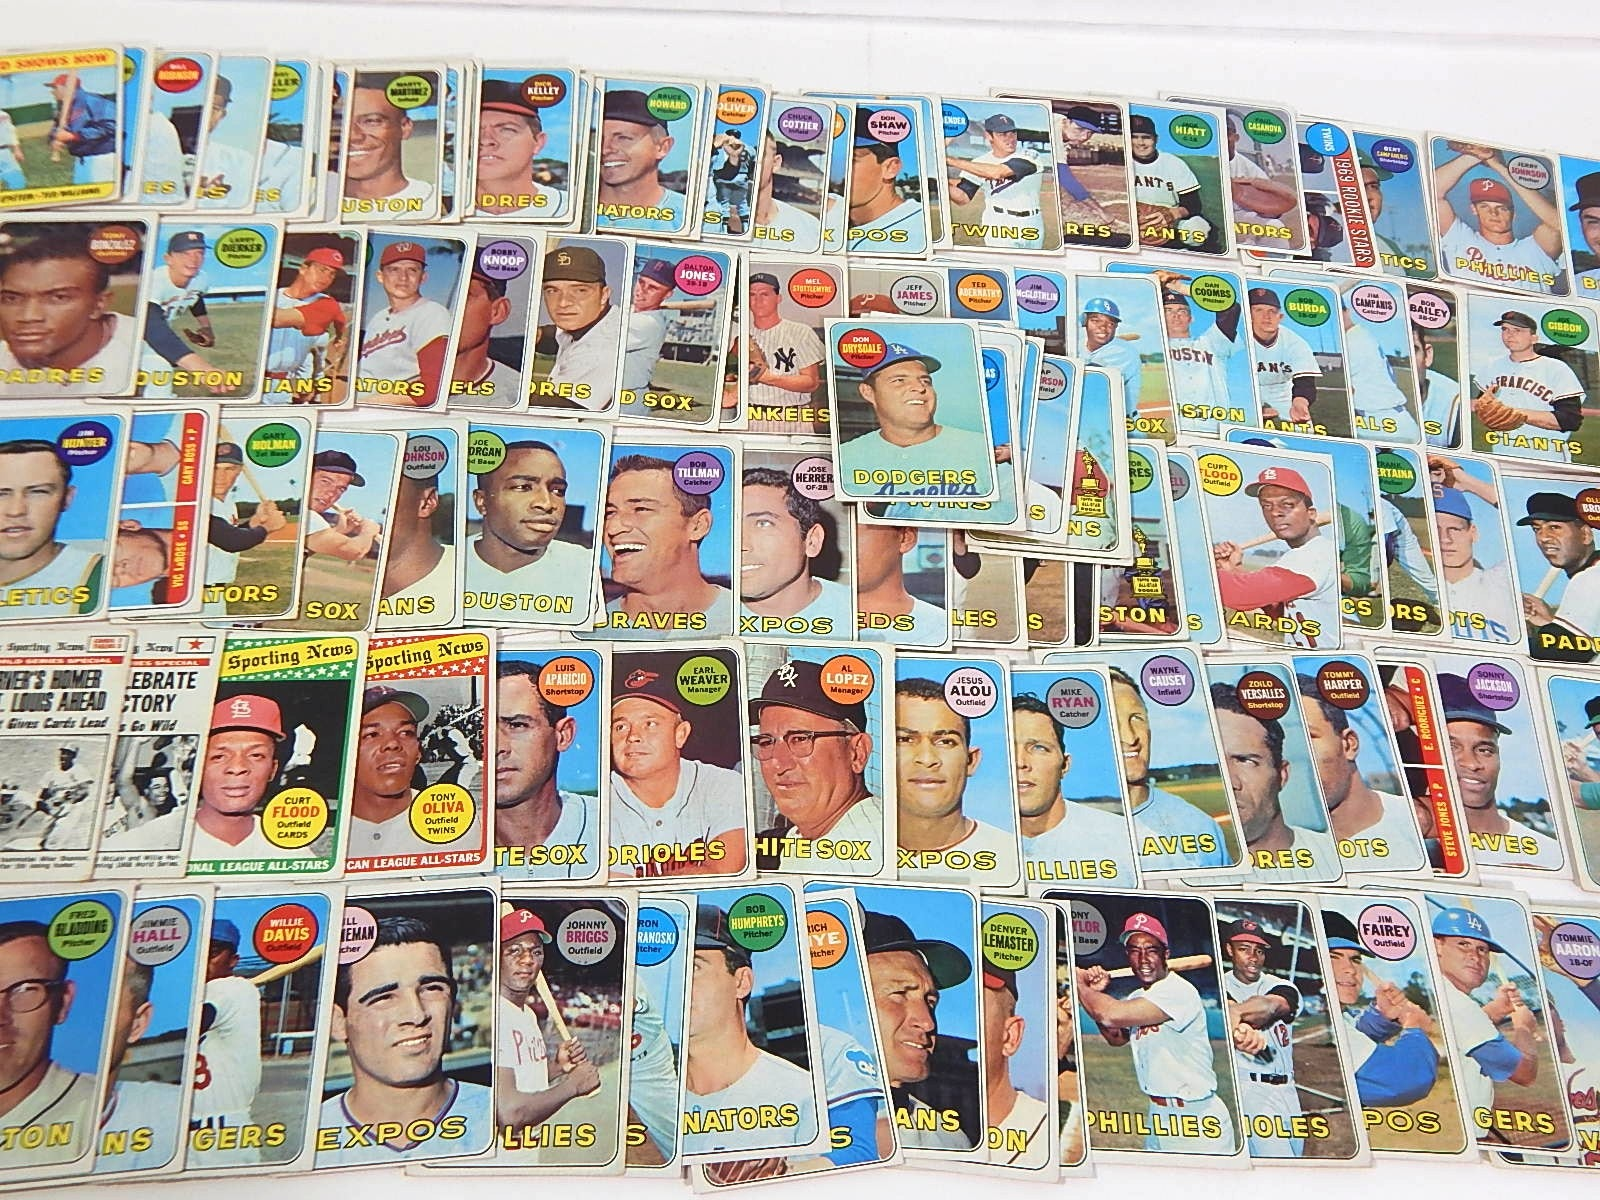 1969 Topps Baseball Cards with Ted Williams, Don Drysdale, Rookies - Over 100 Ct